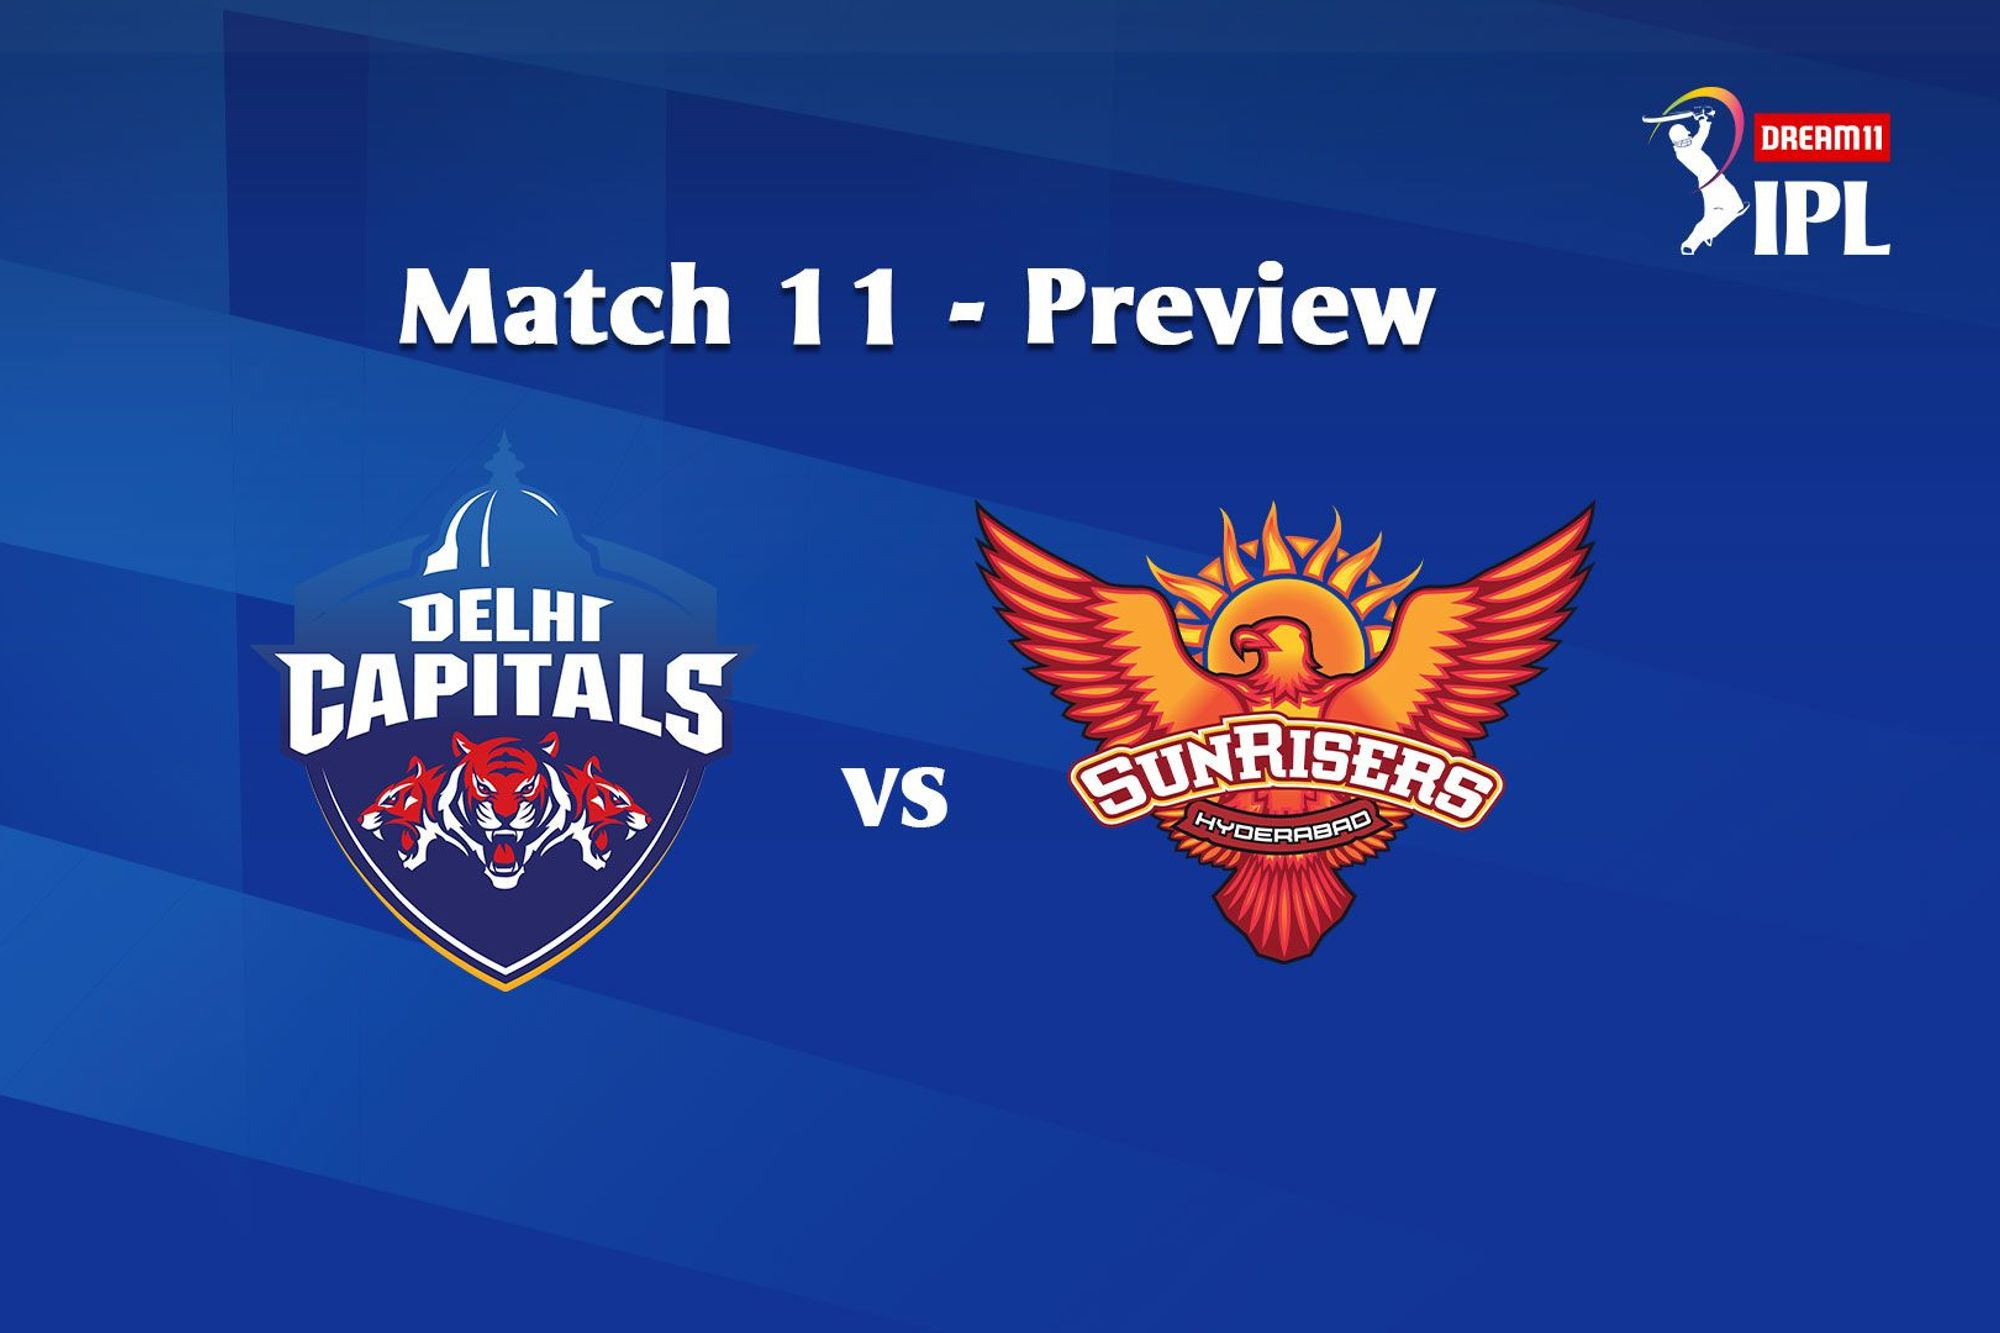 DC and SRH match scheduled for today at 7.30 Pm